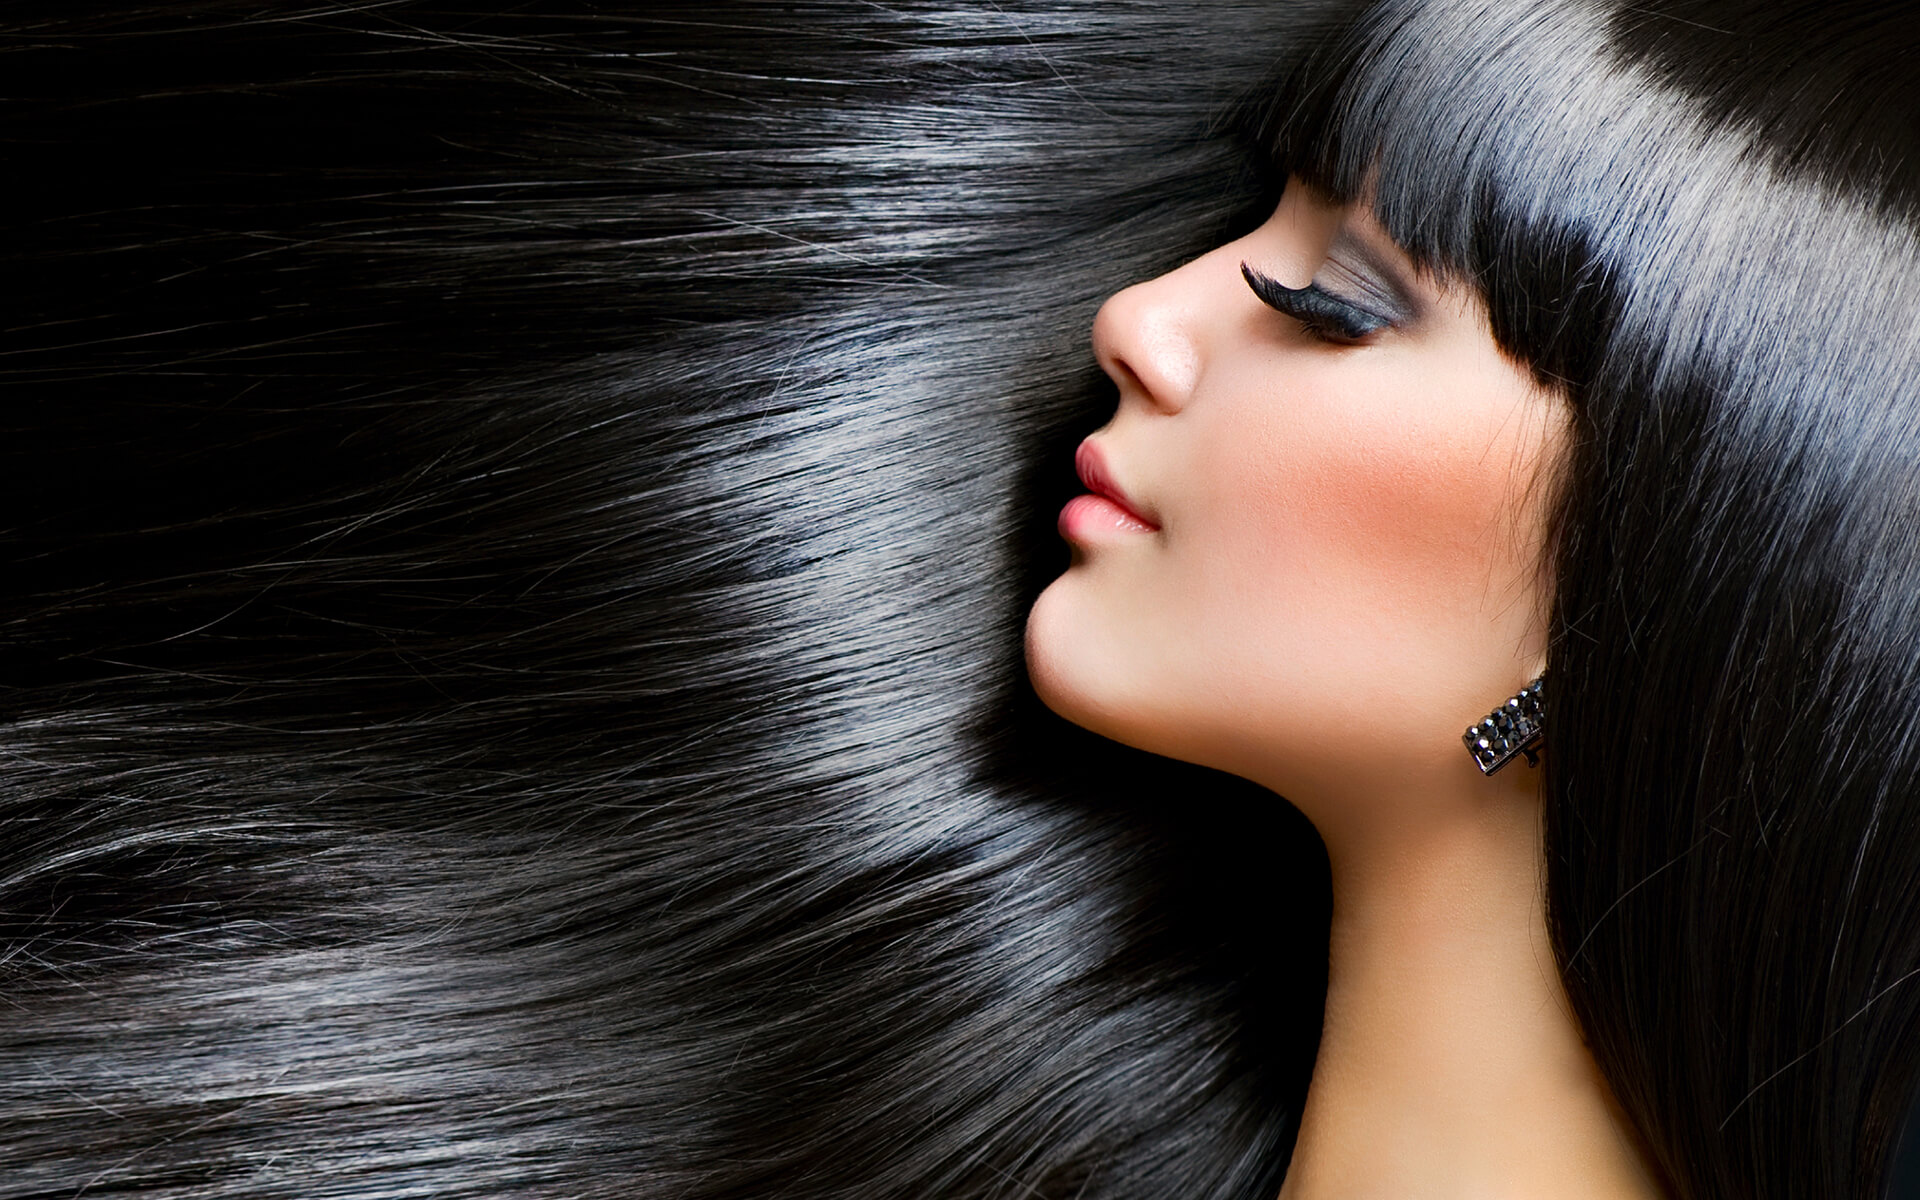 Salon Hair D Ambrosio Designs Hair Studio Hair Salons Albuquerque Nm Haircut